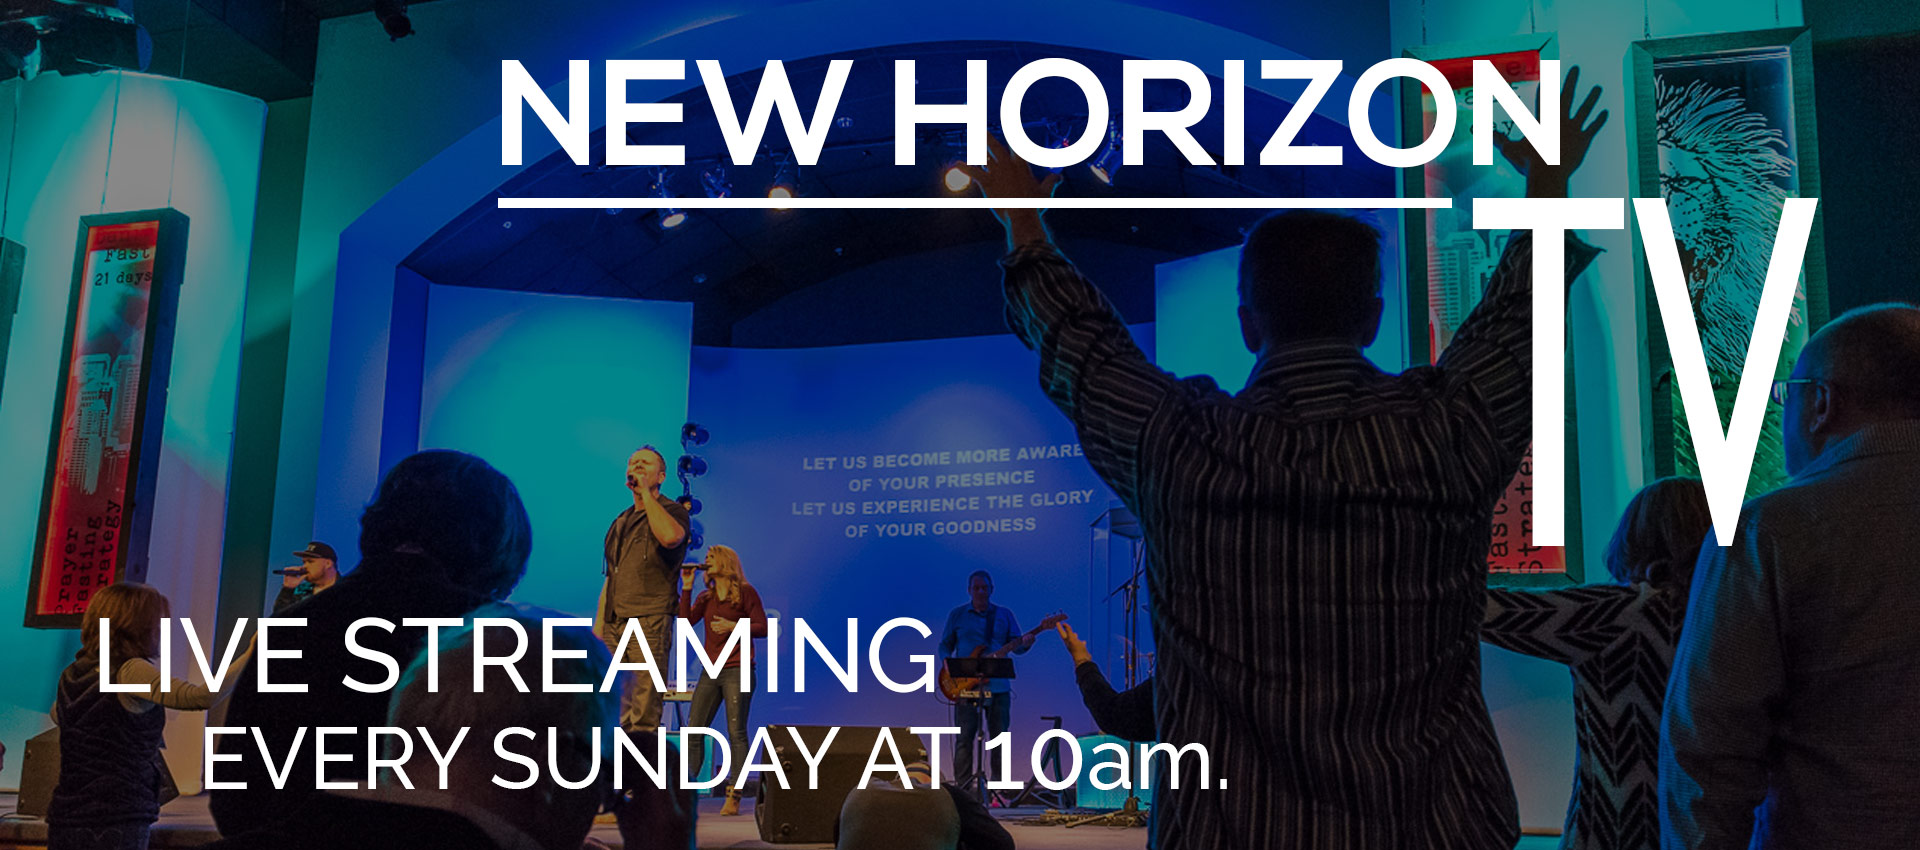 New Horizon Live Streaming